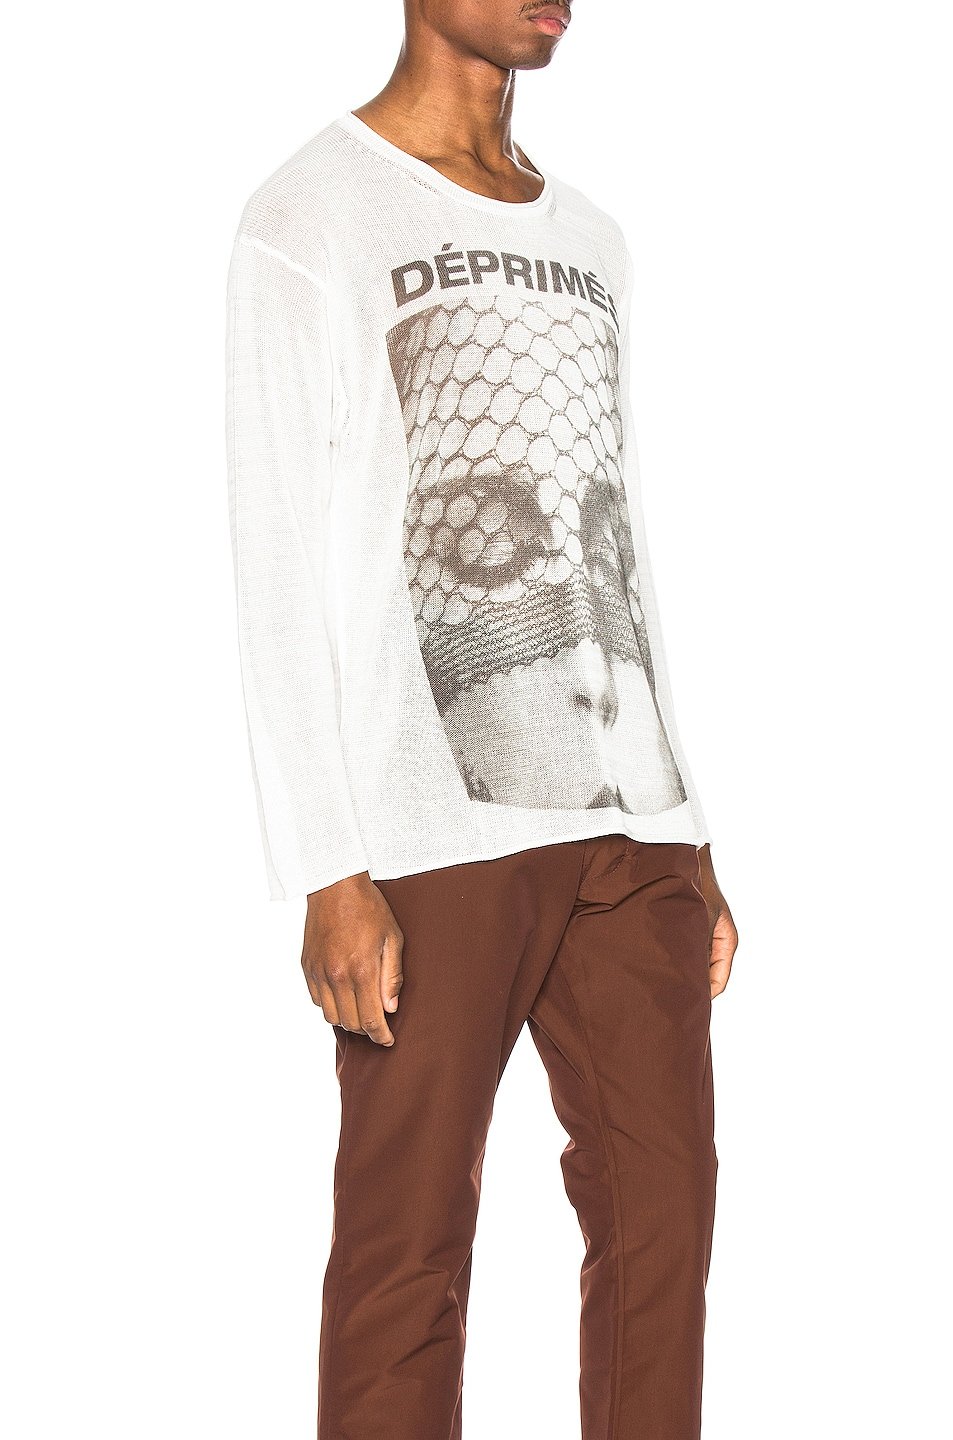 Image 2 of Enfants Riches Deprimes Cashmere Long Sleeve Print Tee in Cream & Black